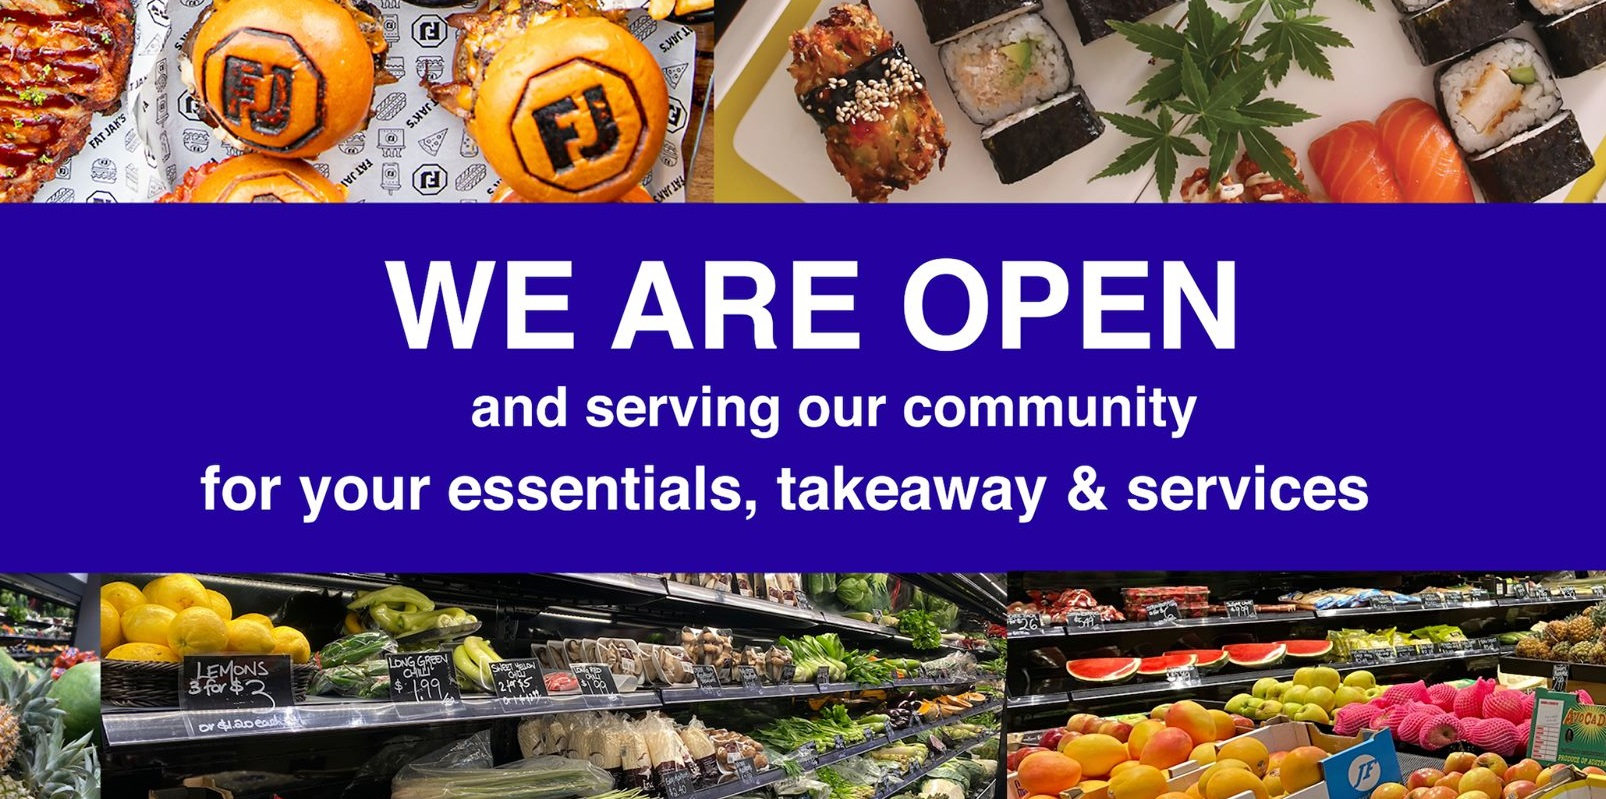 M-City is open banner groceries and takeaway